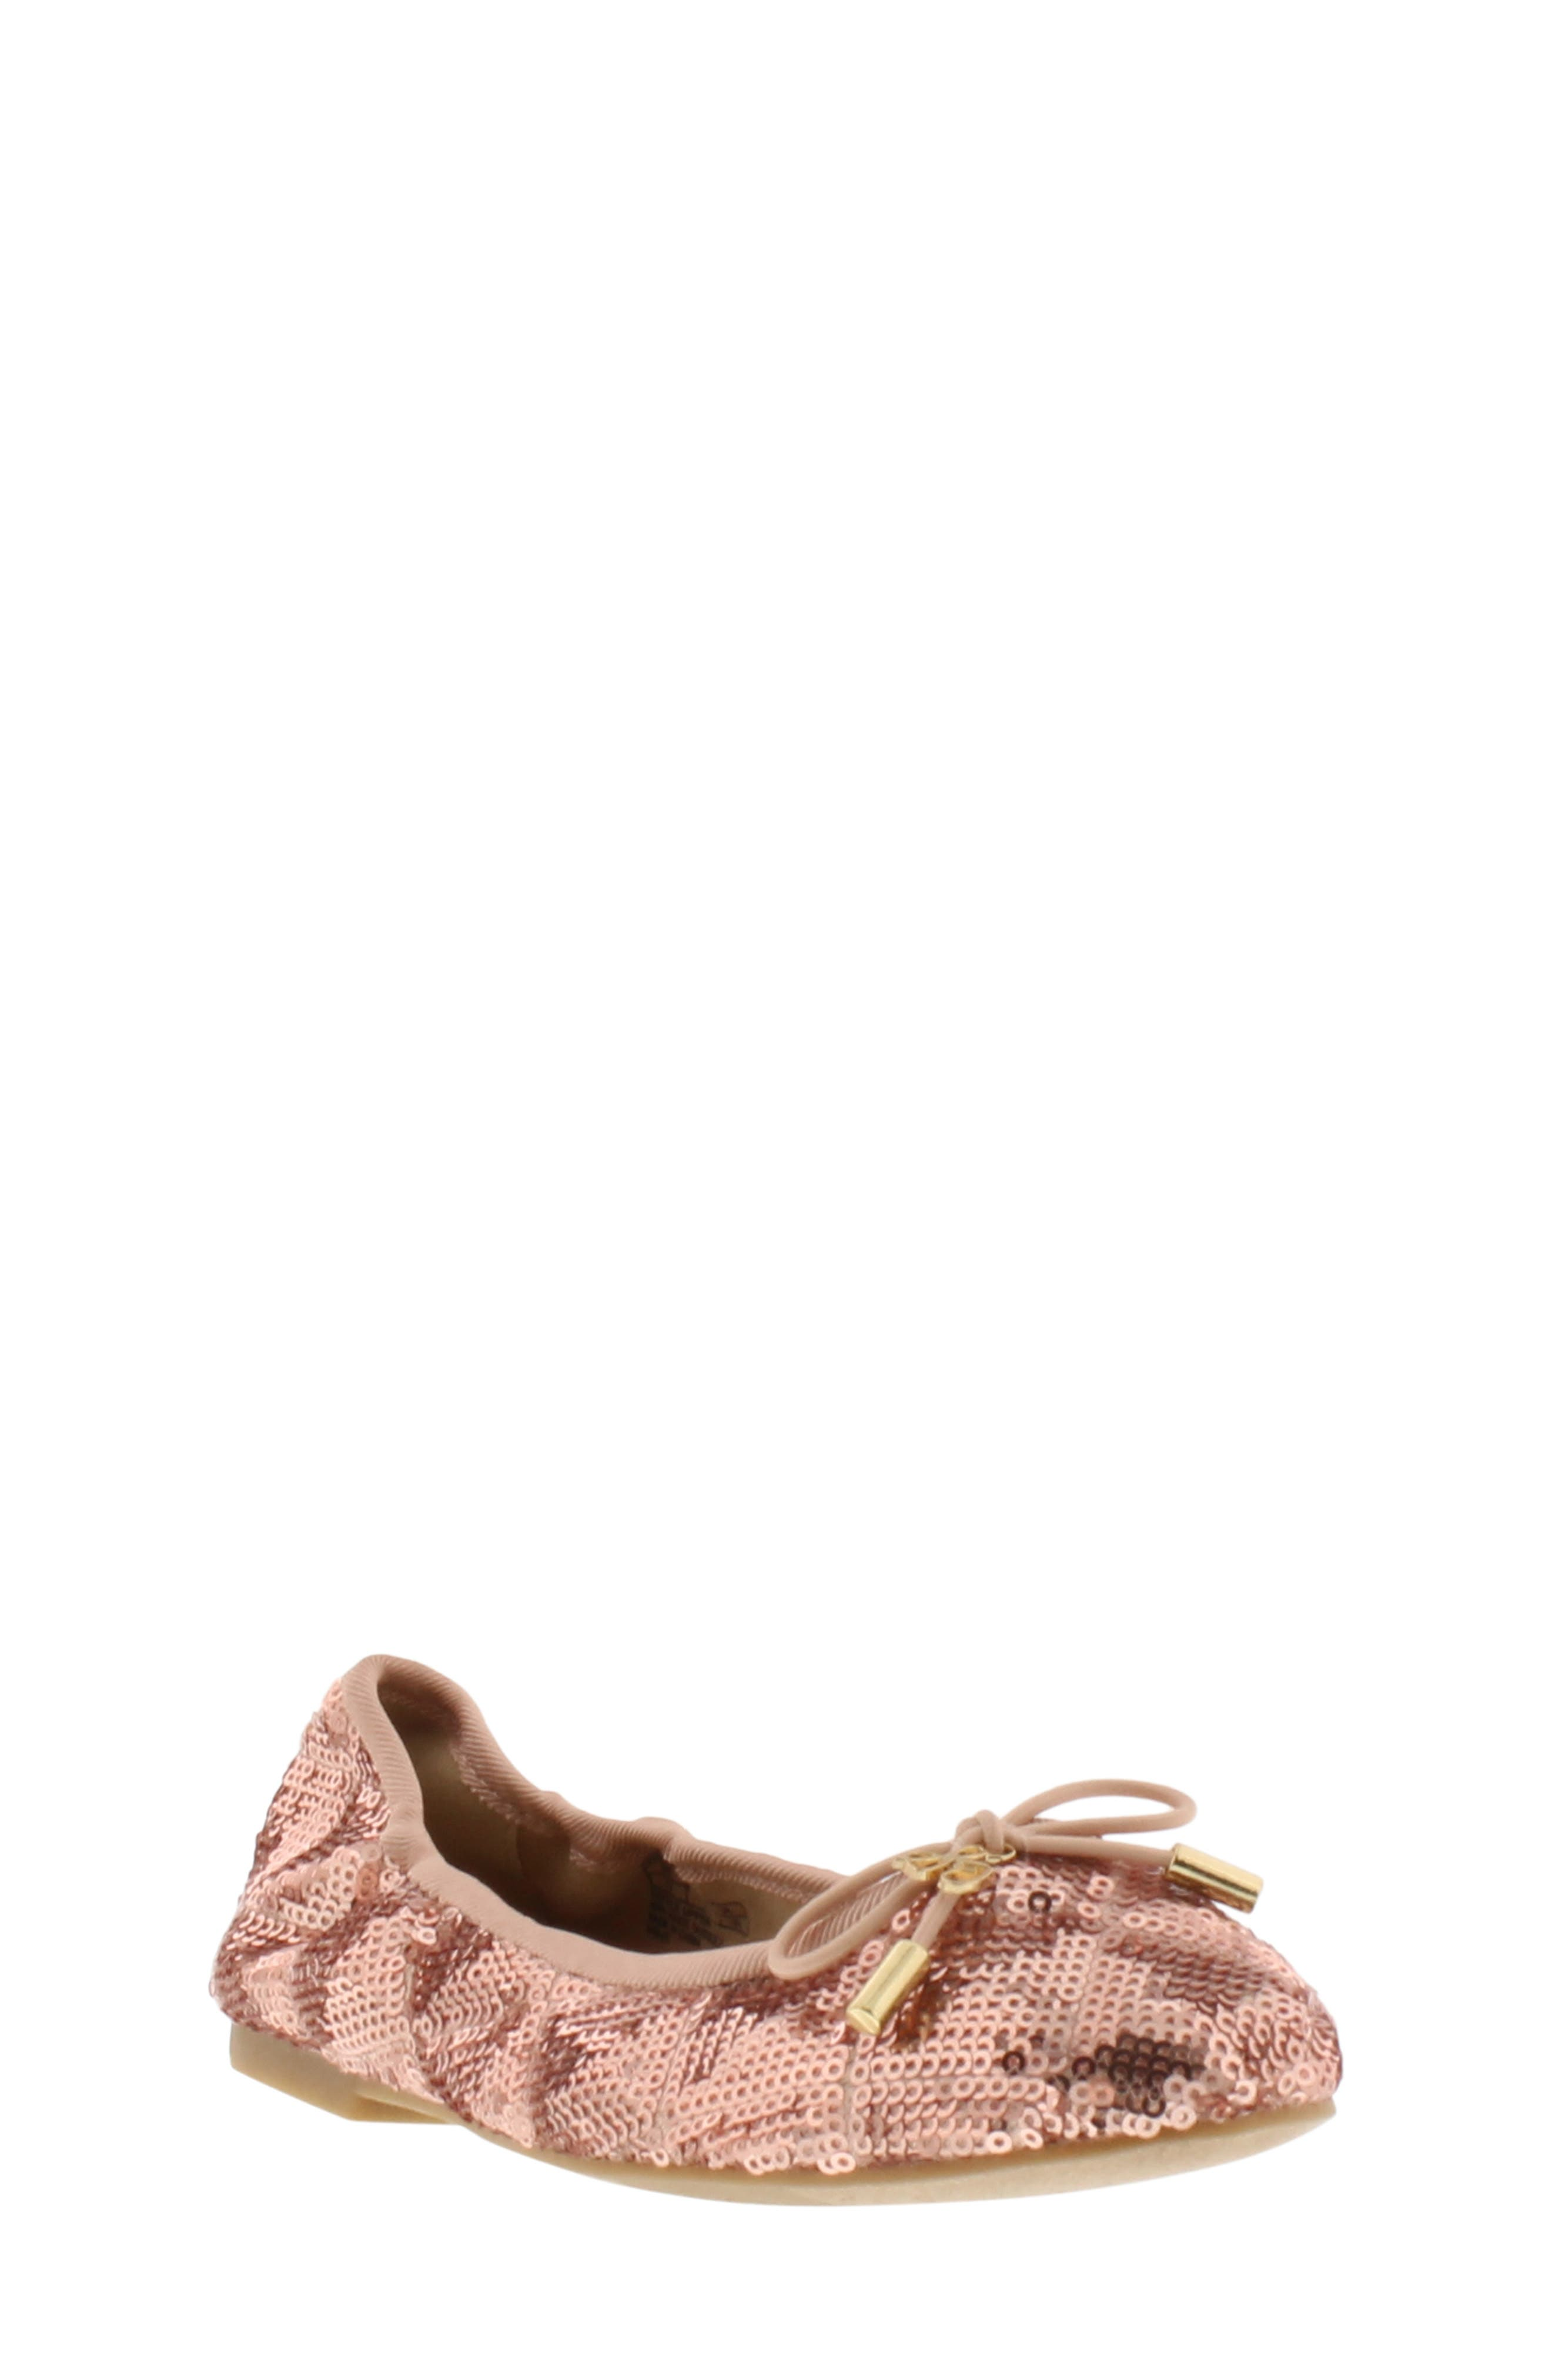 Felicia Sequin Ballet Flat,                         Main,                         color, ROSE GOLD